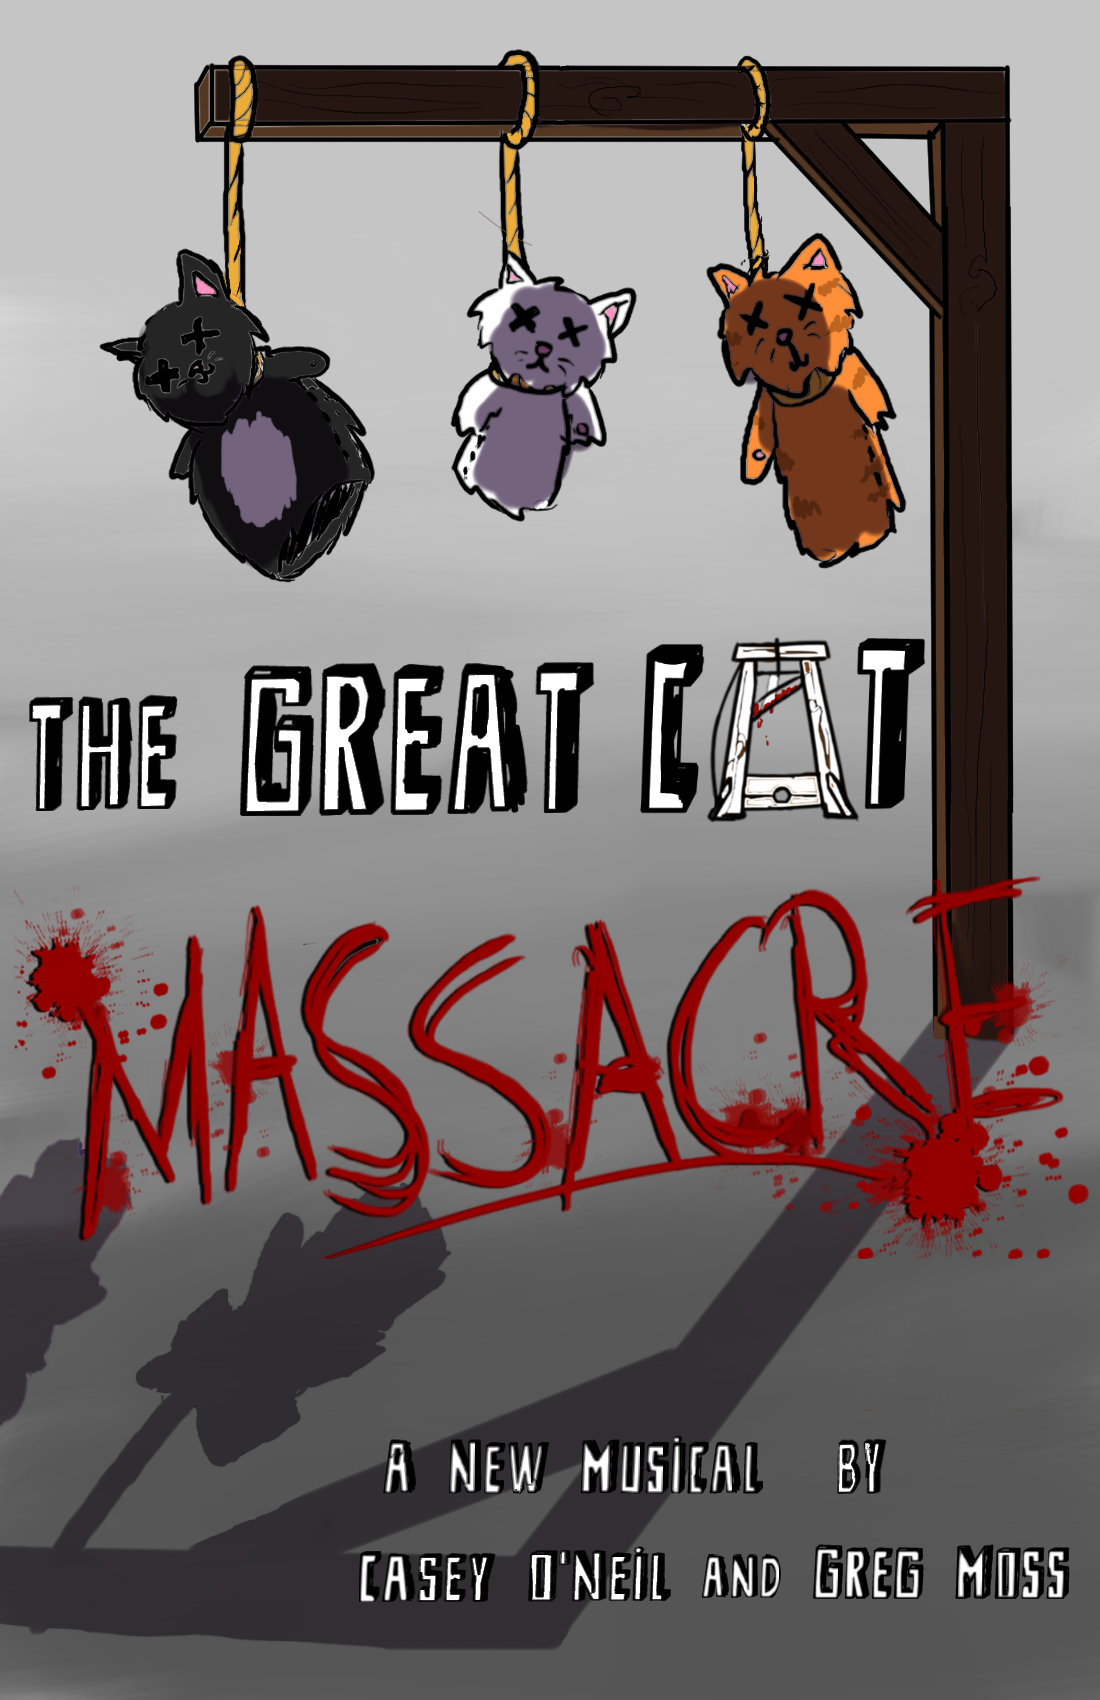 The Great Cat Massacre